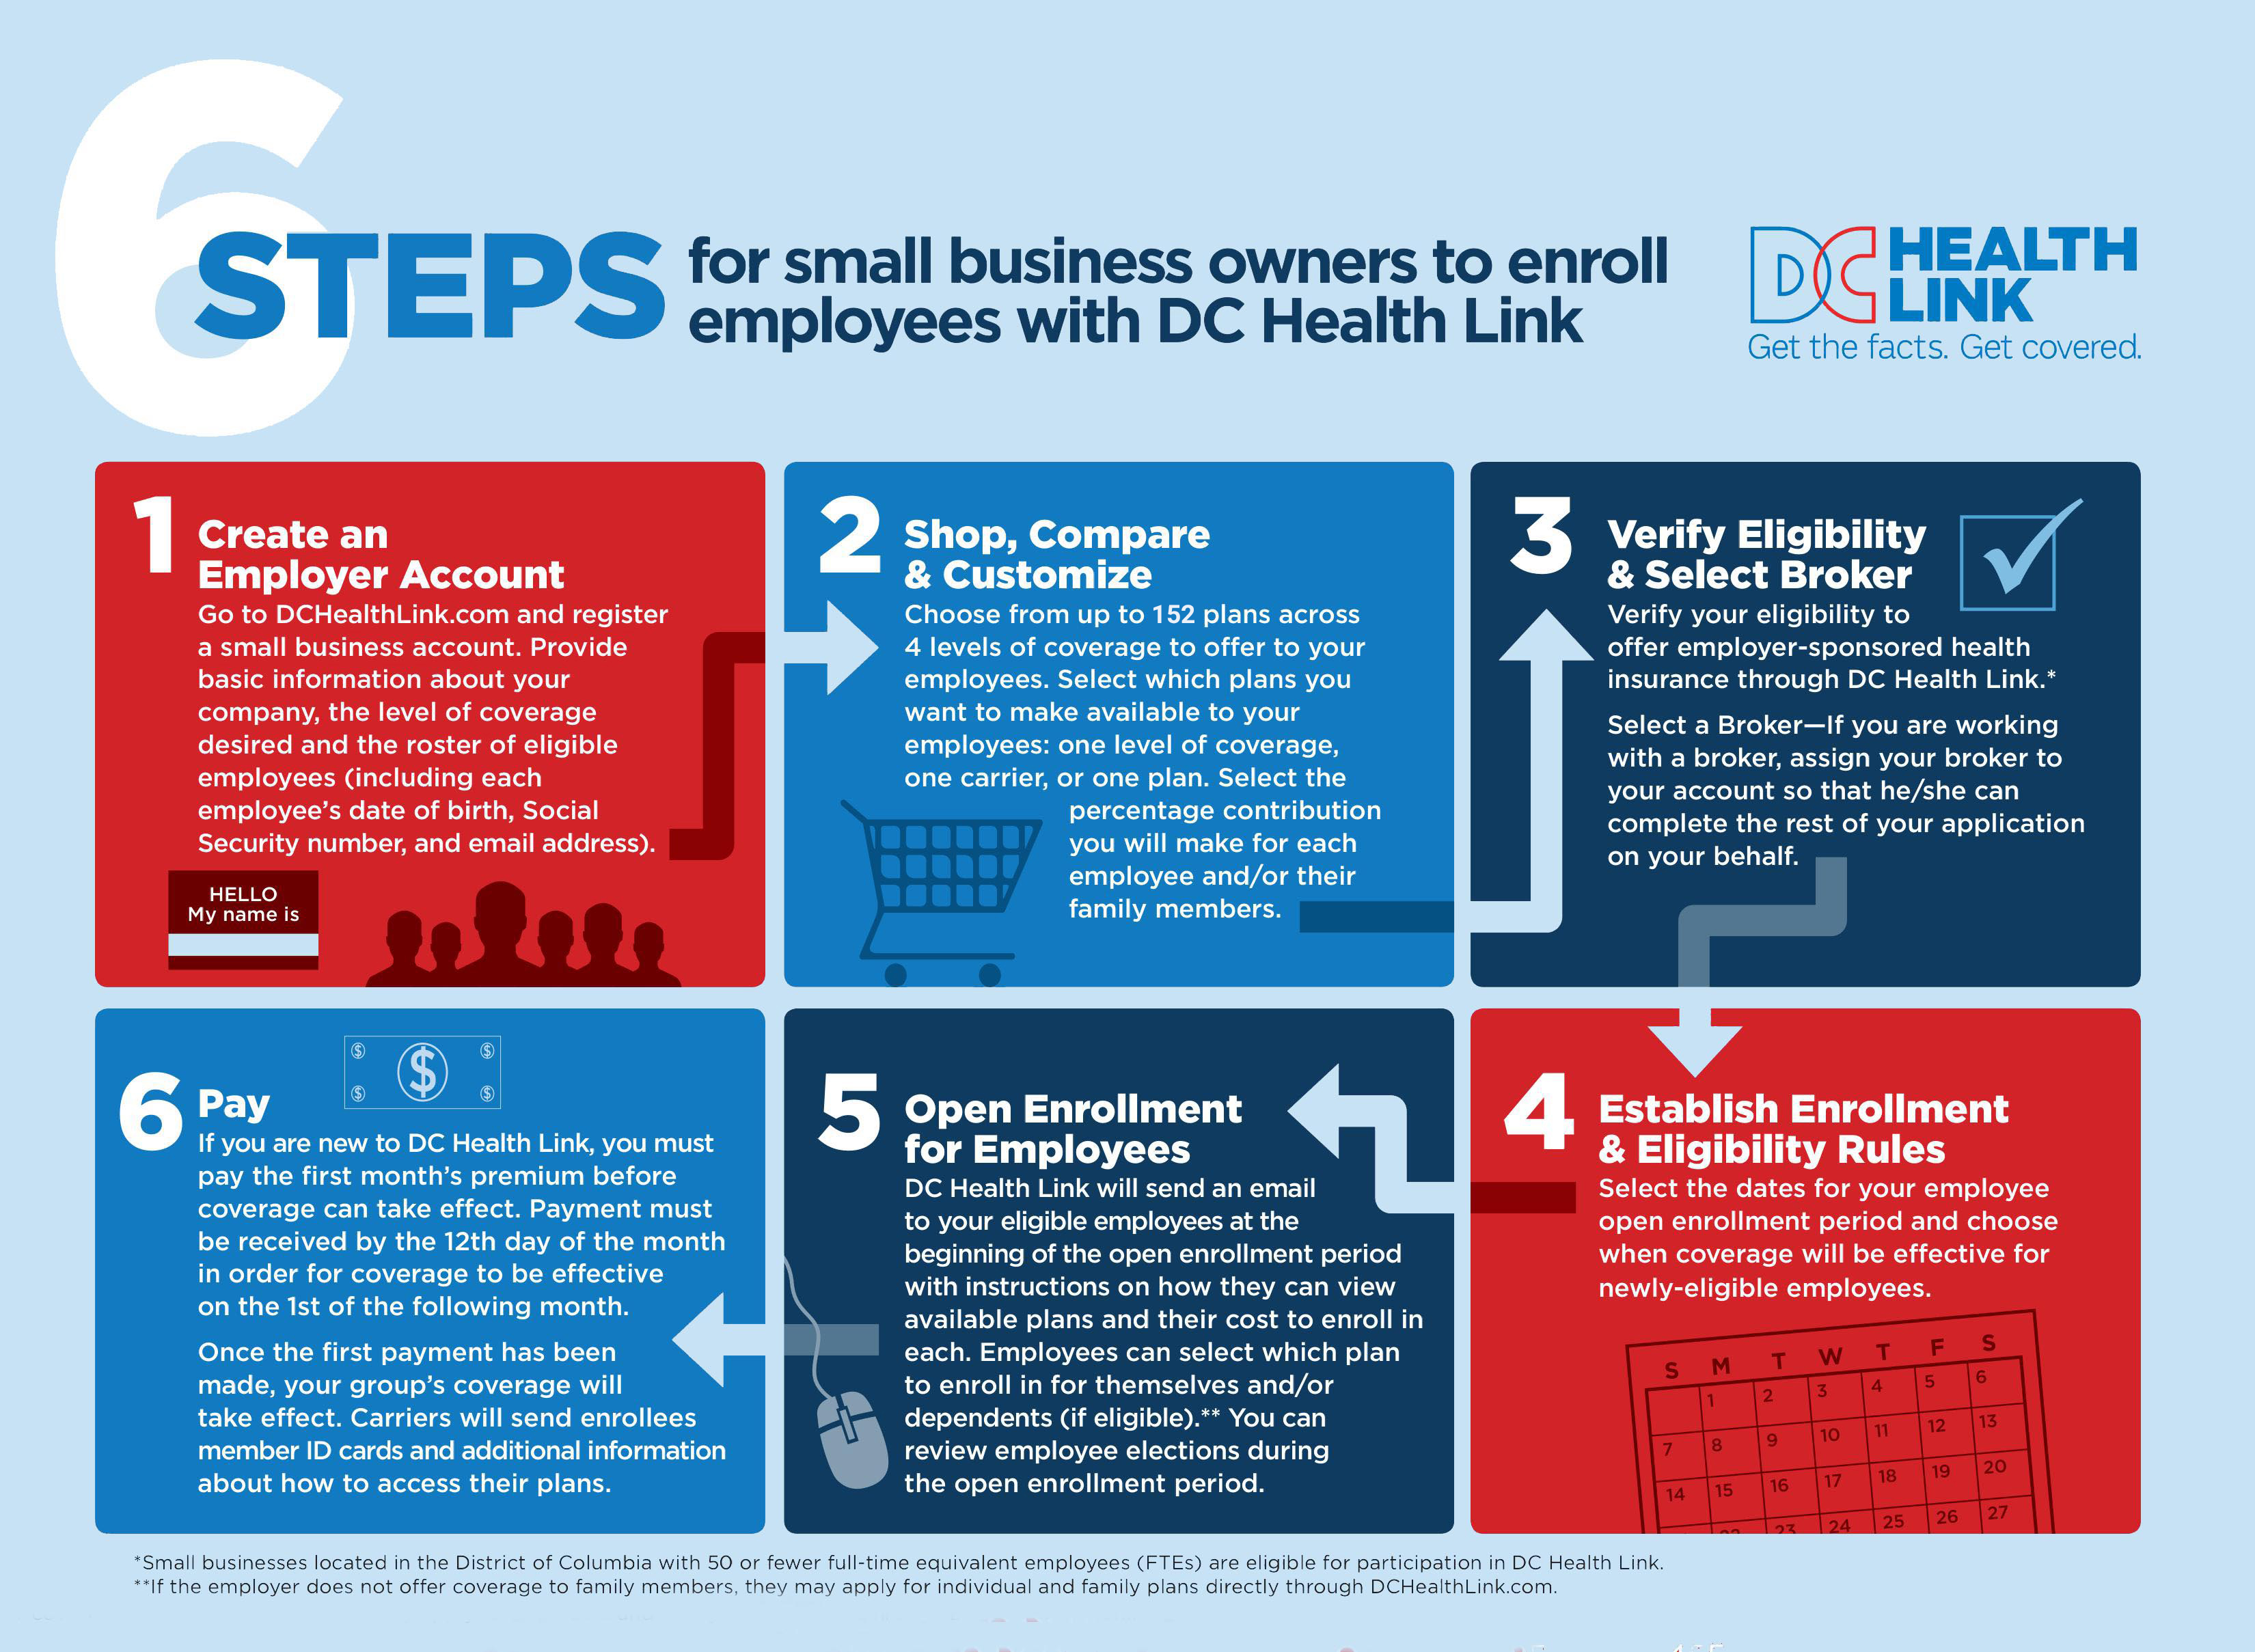 chart: 6 steps for small business owners to enroll employees with dc health link, for full text please download pdf below